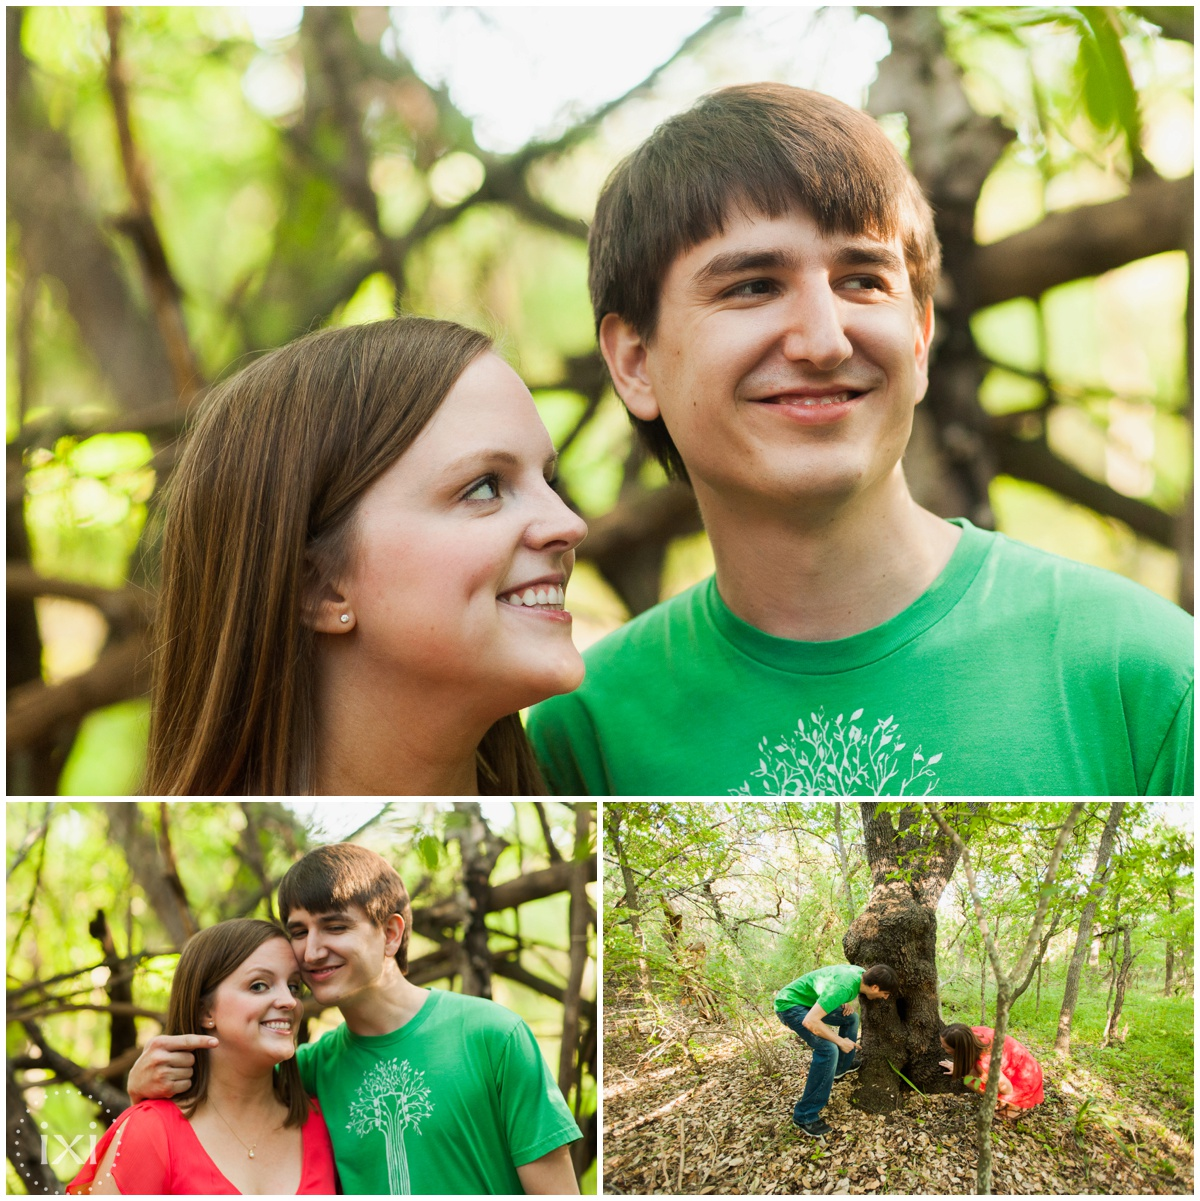 mary-moore-searight-park-austin-engagement-photos_0002